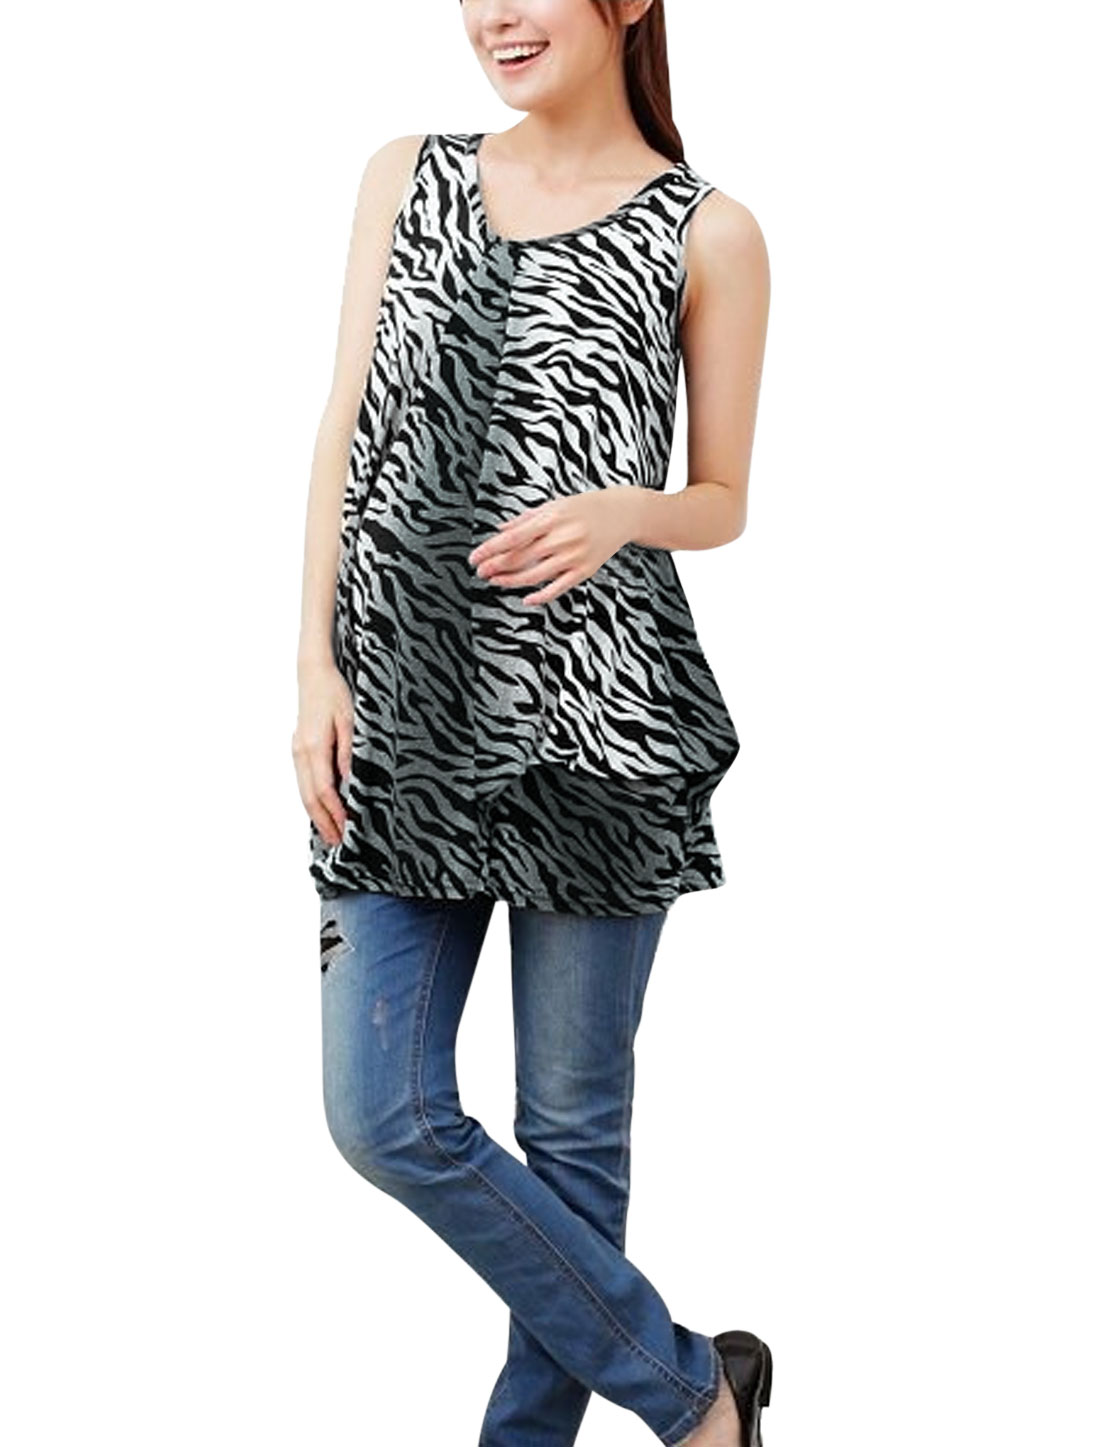 Maternity Leisure Sleeveless Ruched Detail Zebra Prints Blouse Black Gray M